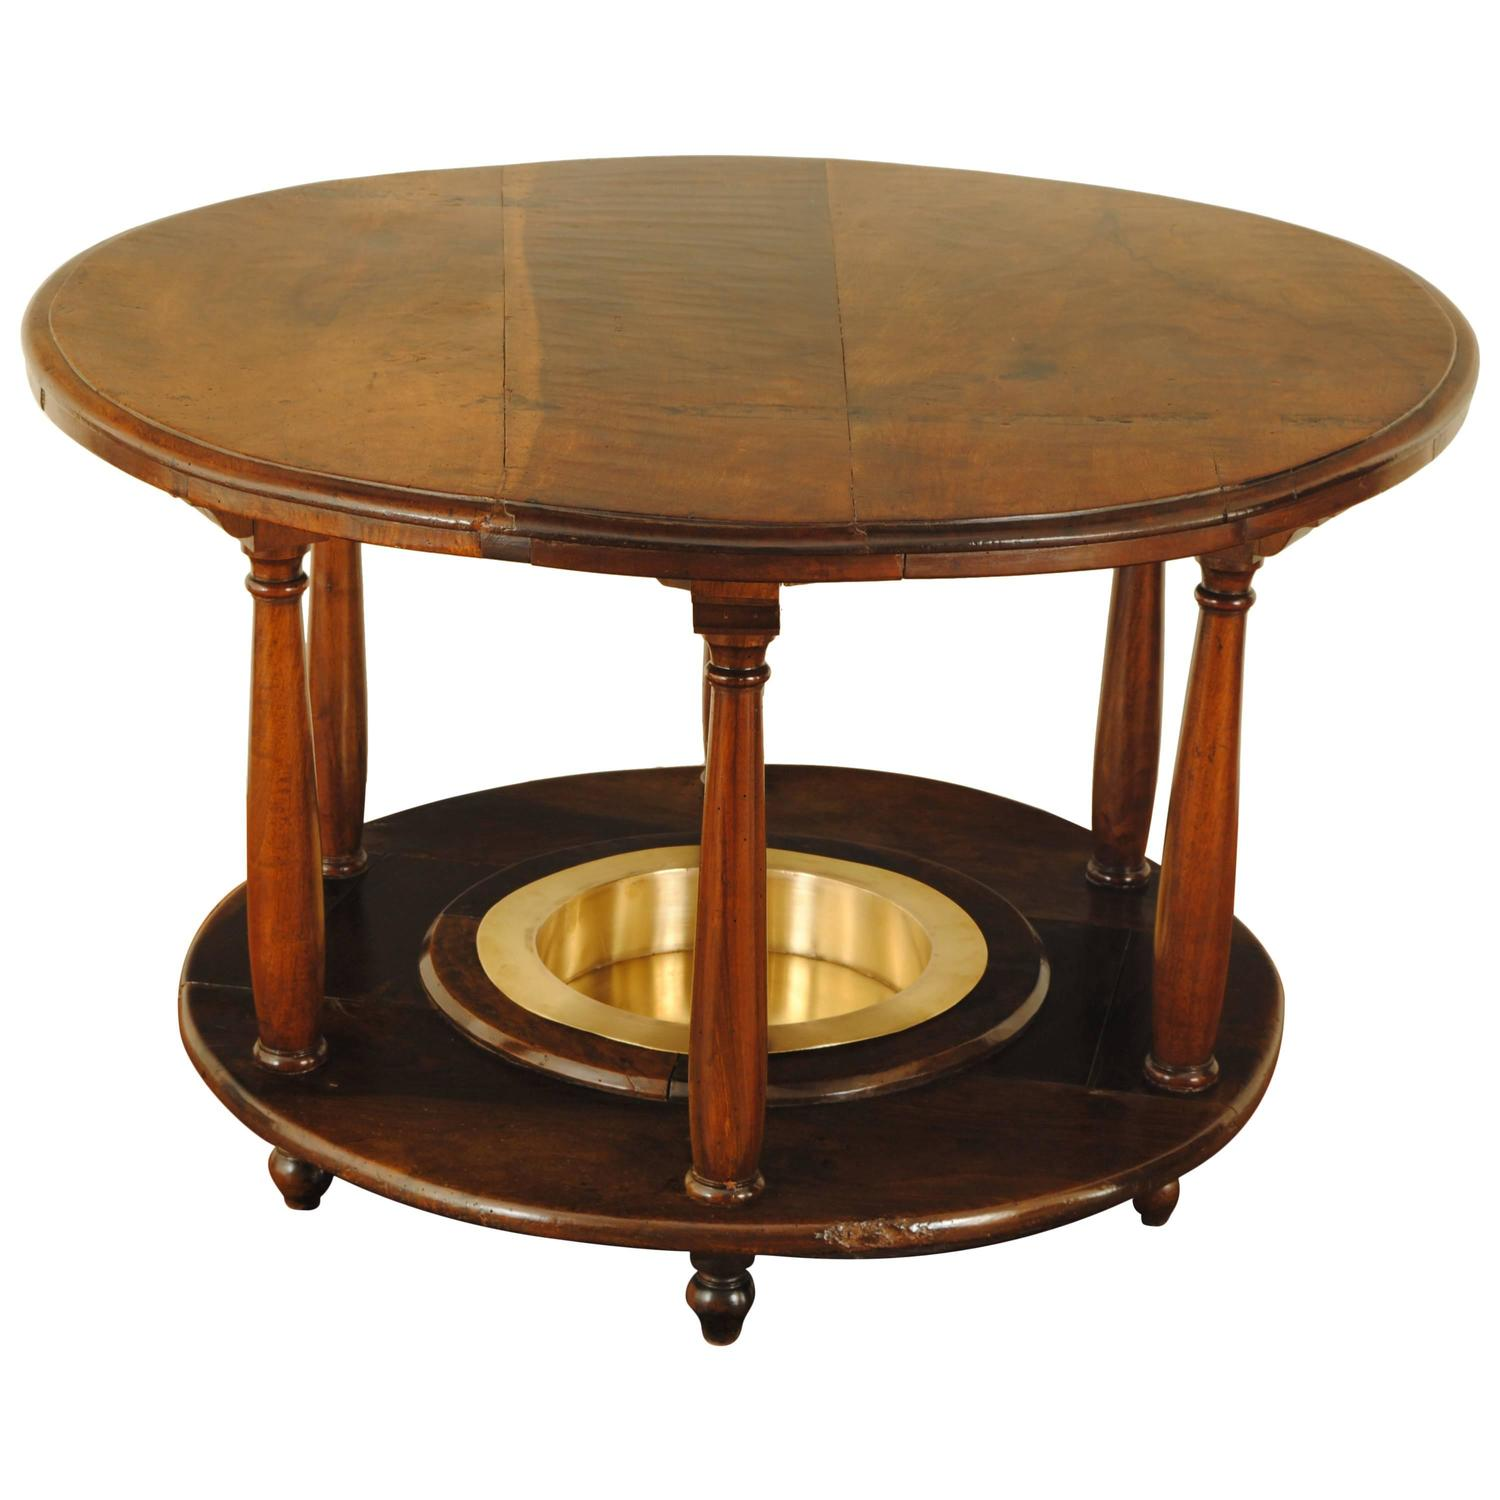 Spanish neoclassical walnut and brass brazier table 19th for Table in spanish